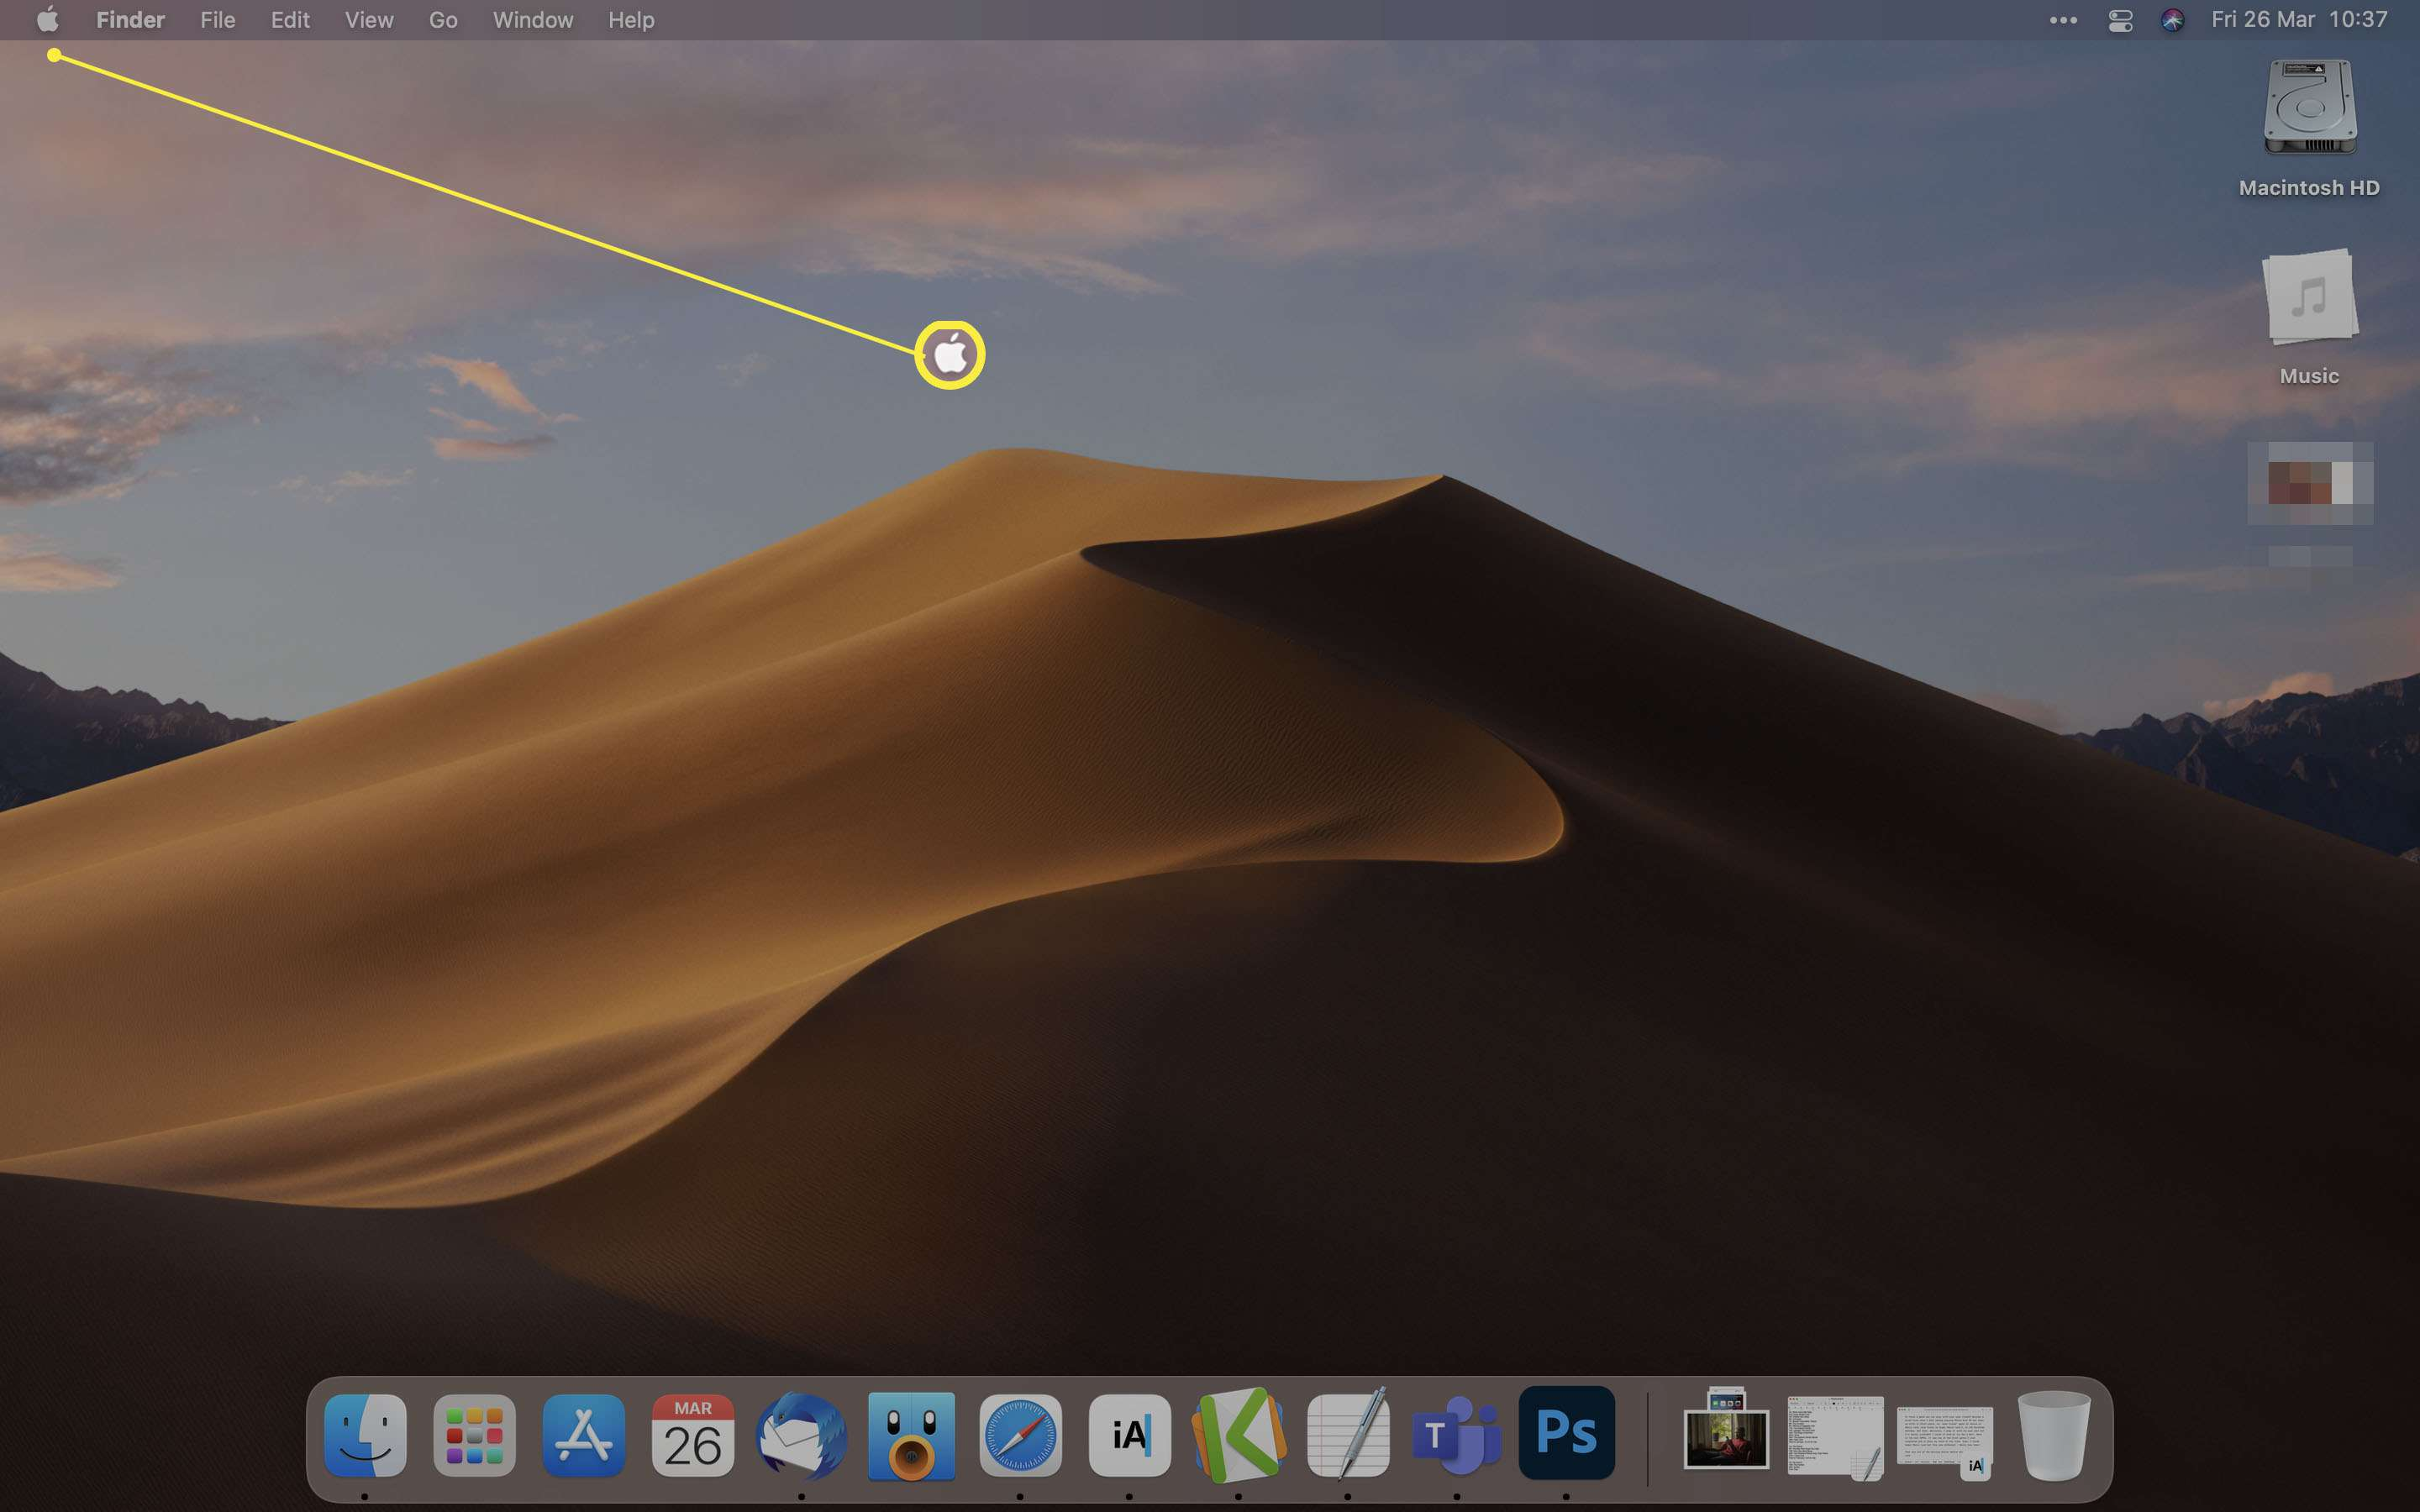 macOS desktop with Apple icon highlighted